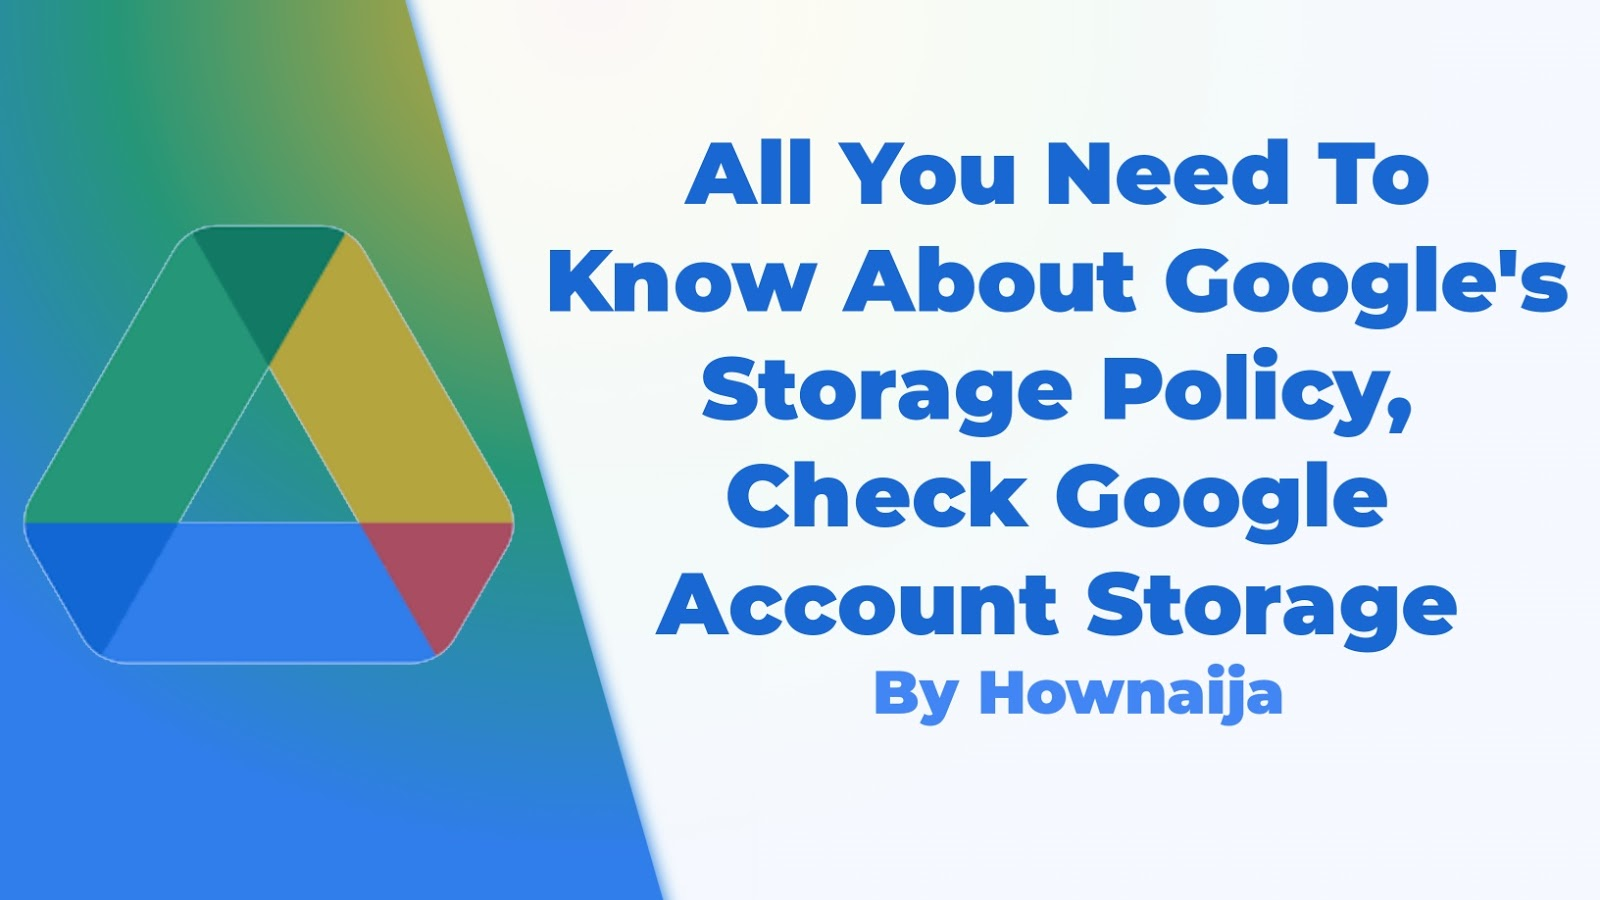 All You Need To Know About Google's Storage Policy, Check Google Account Storage